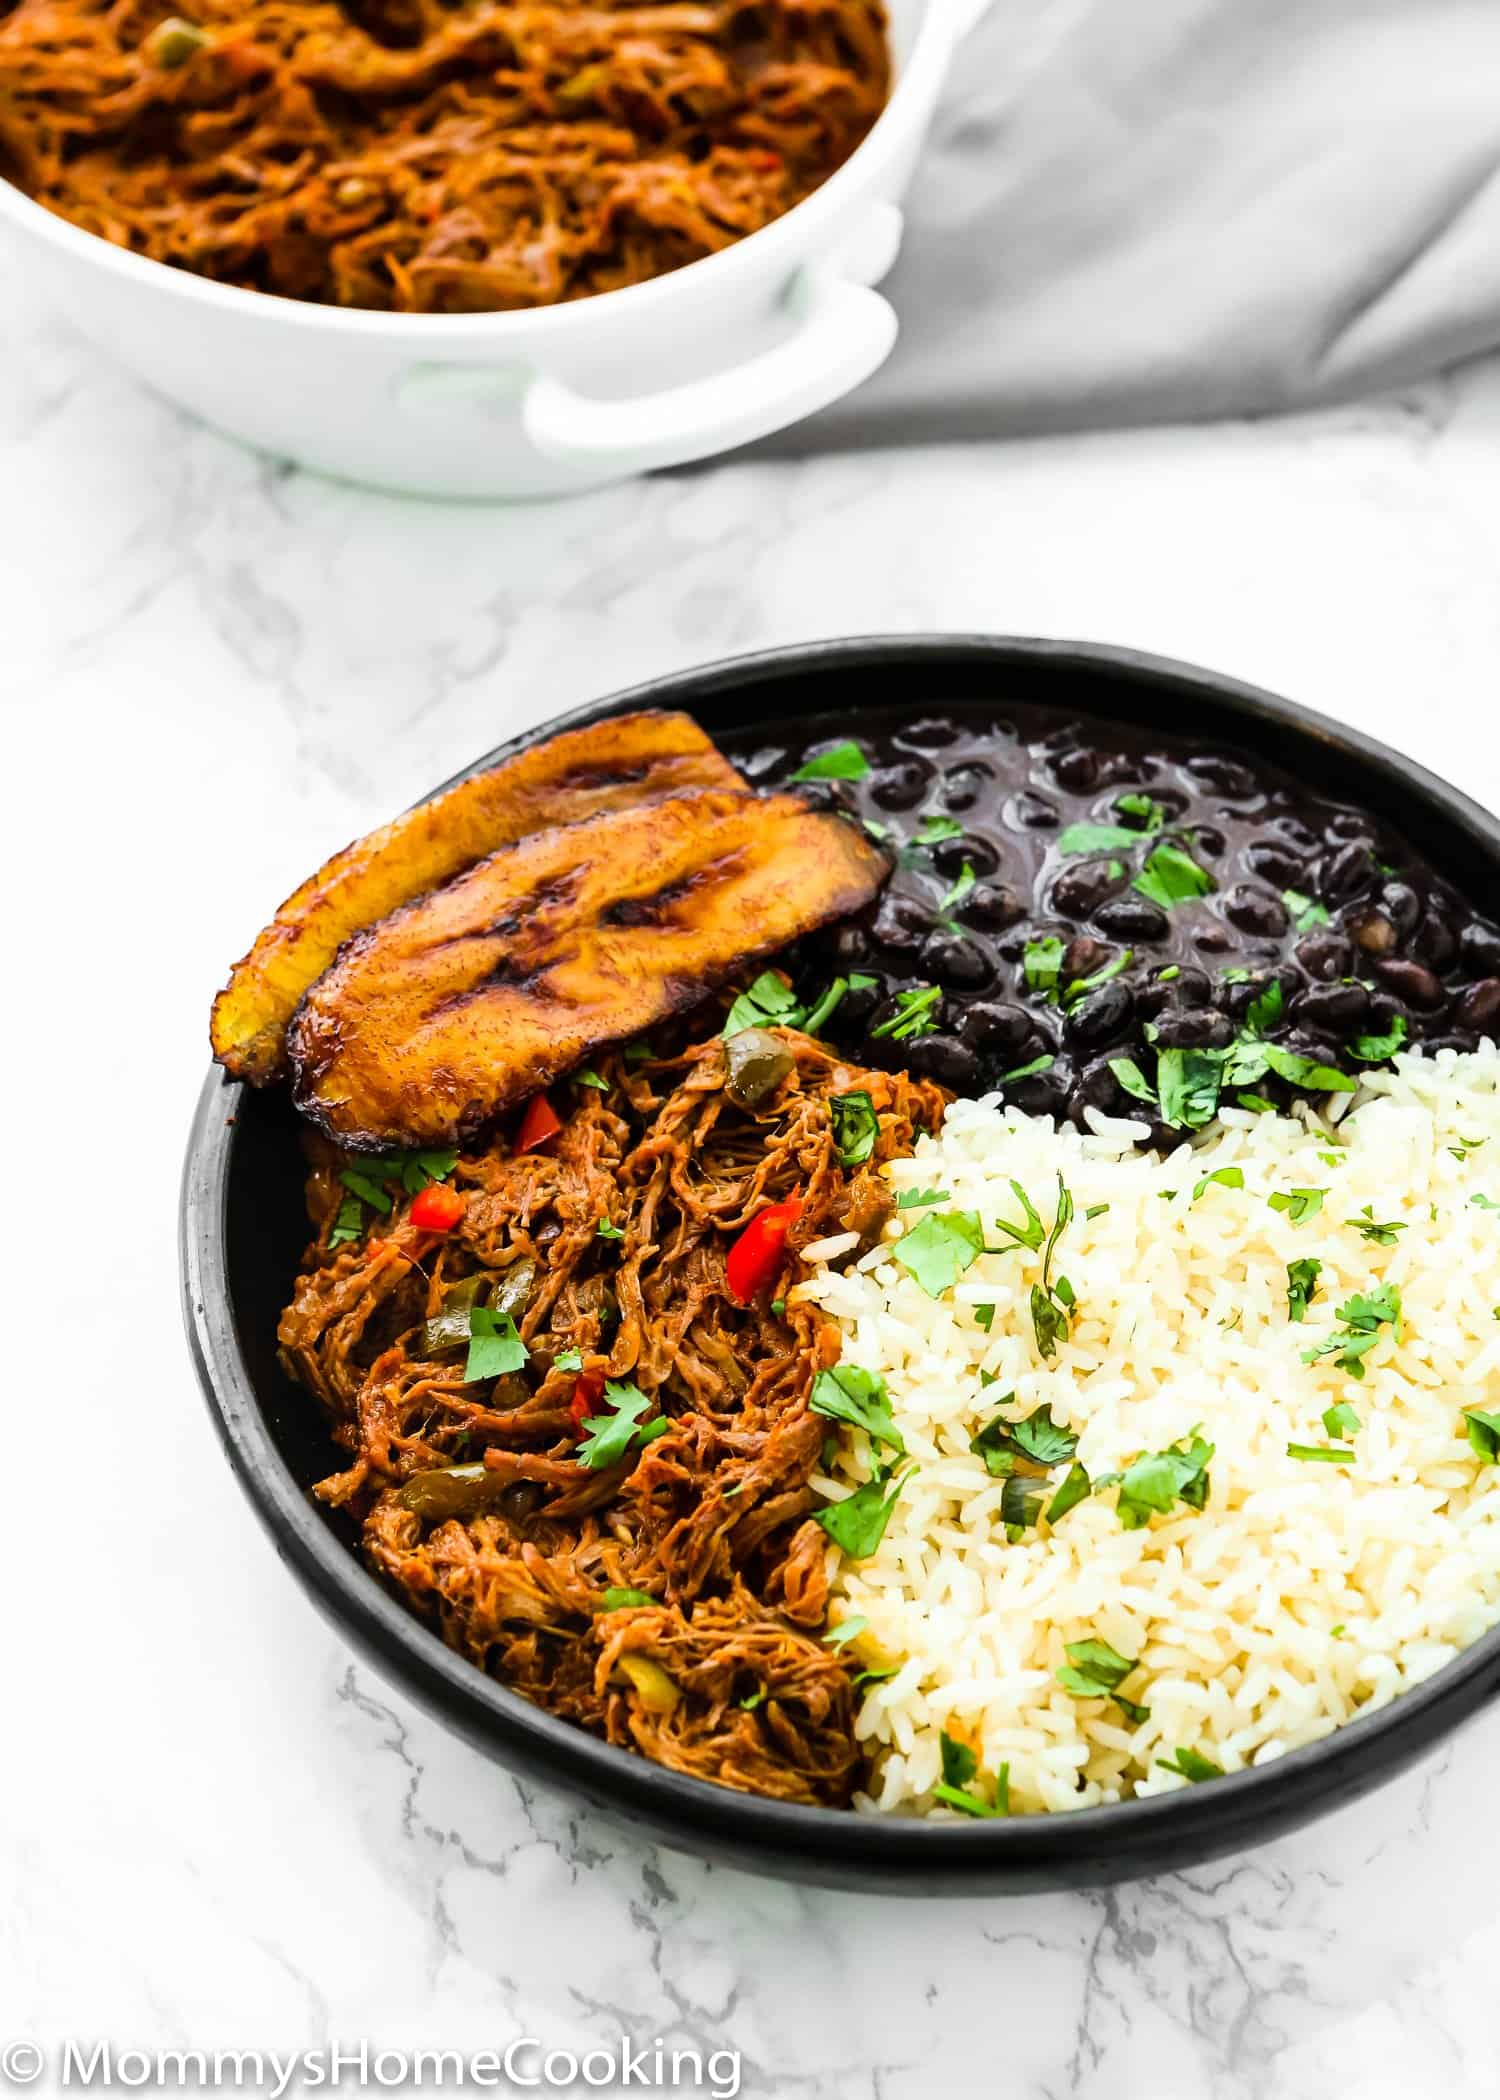 Venezuelan Shredded Beef on a plate with beans and rice for Pabellon Criollo.